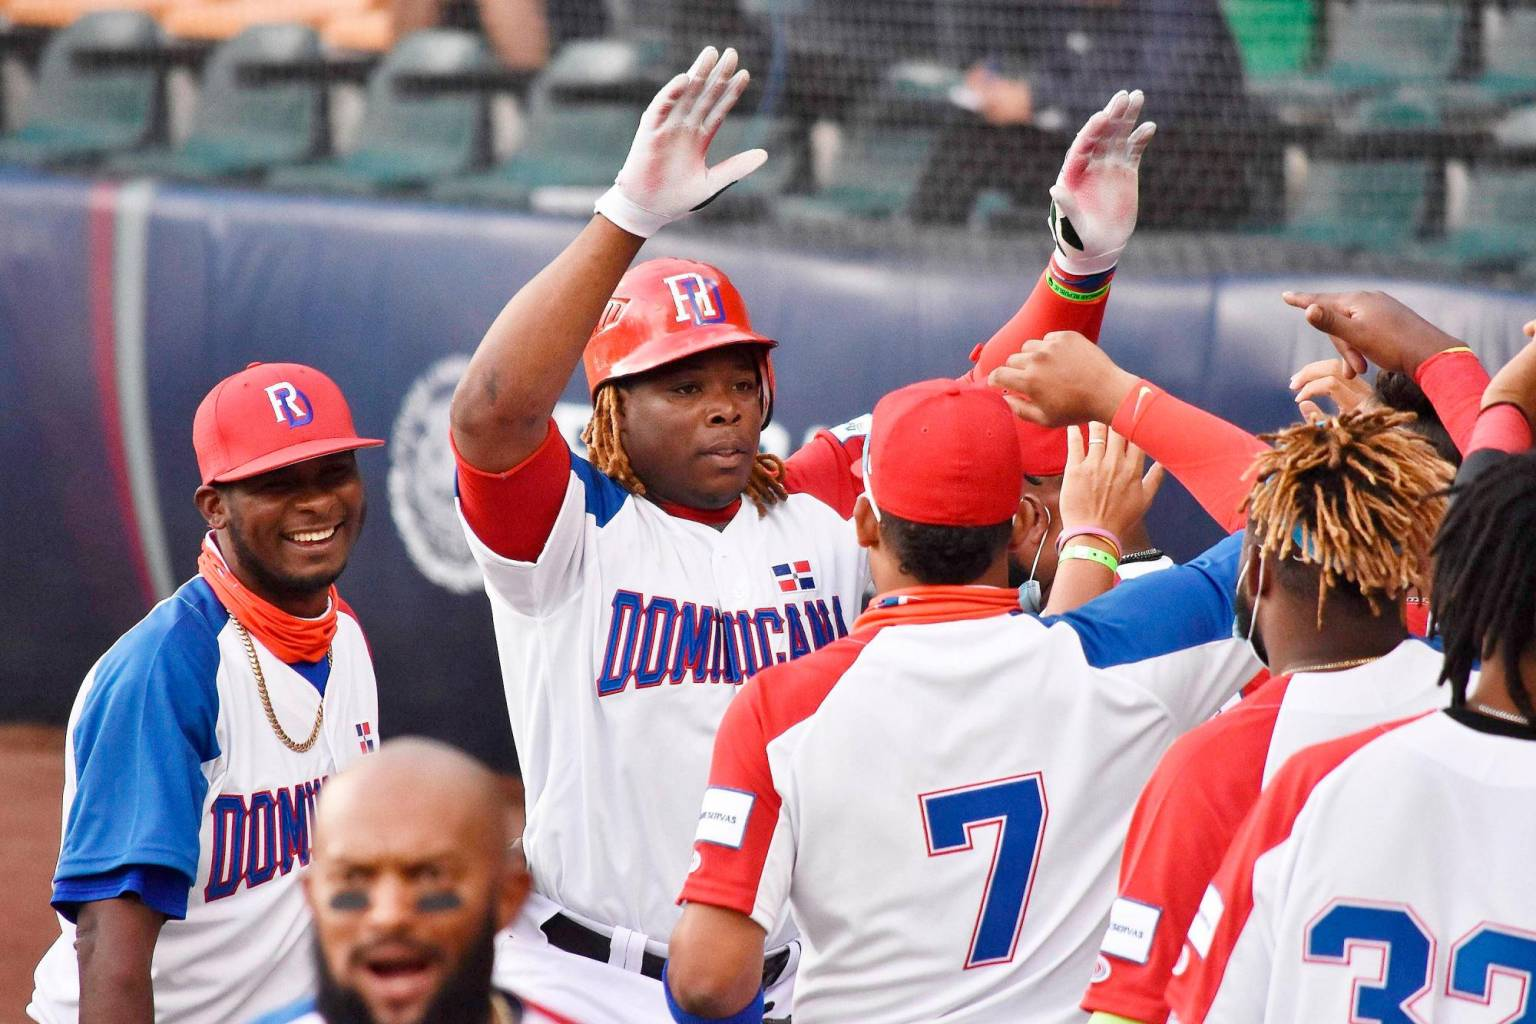 The Dominican Republic is risking everything against Venezuela to get a ticket to Tokyo